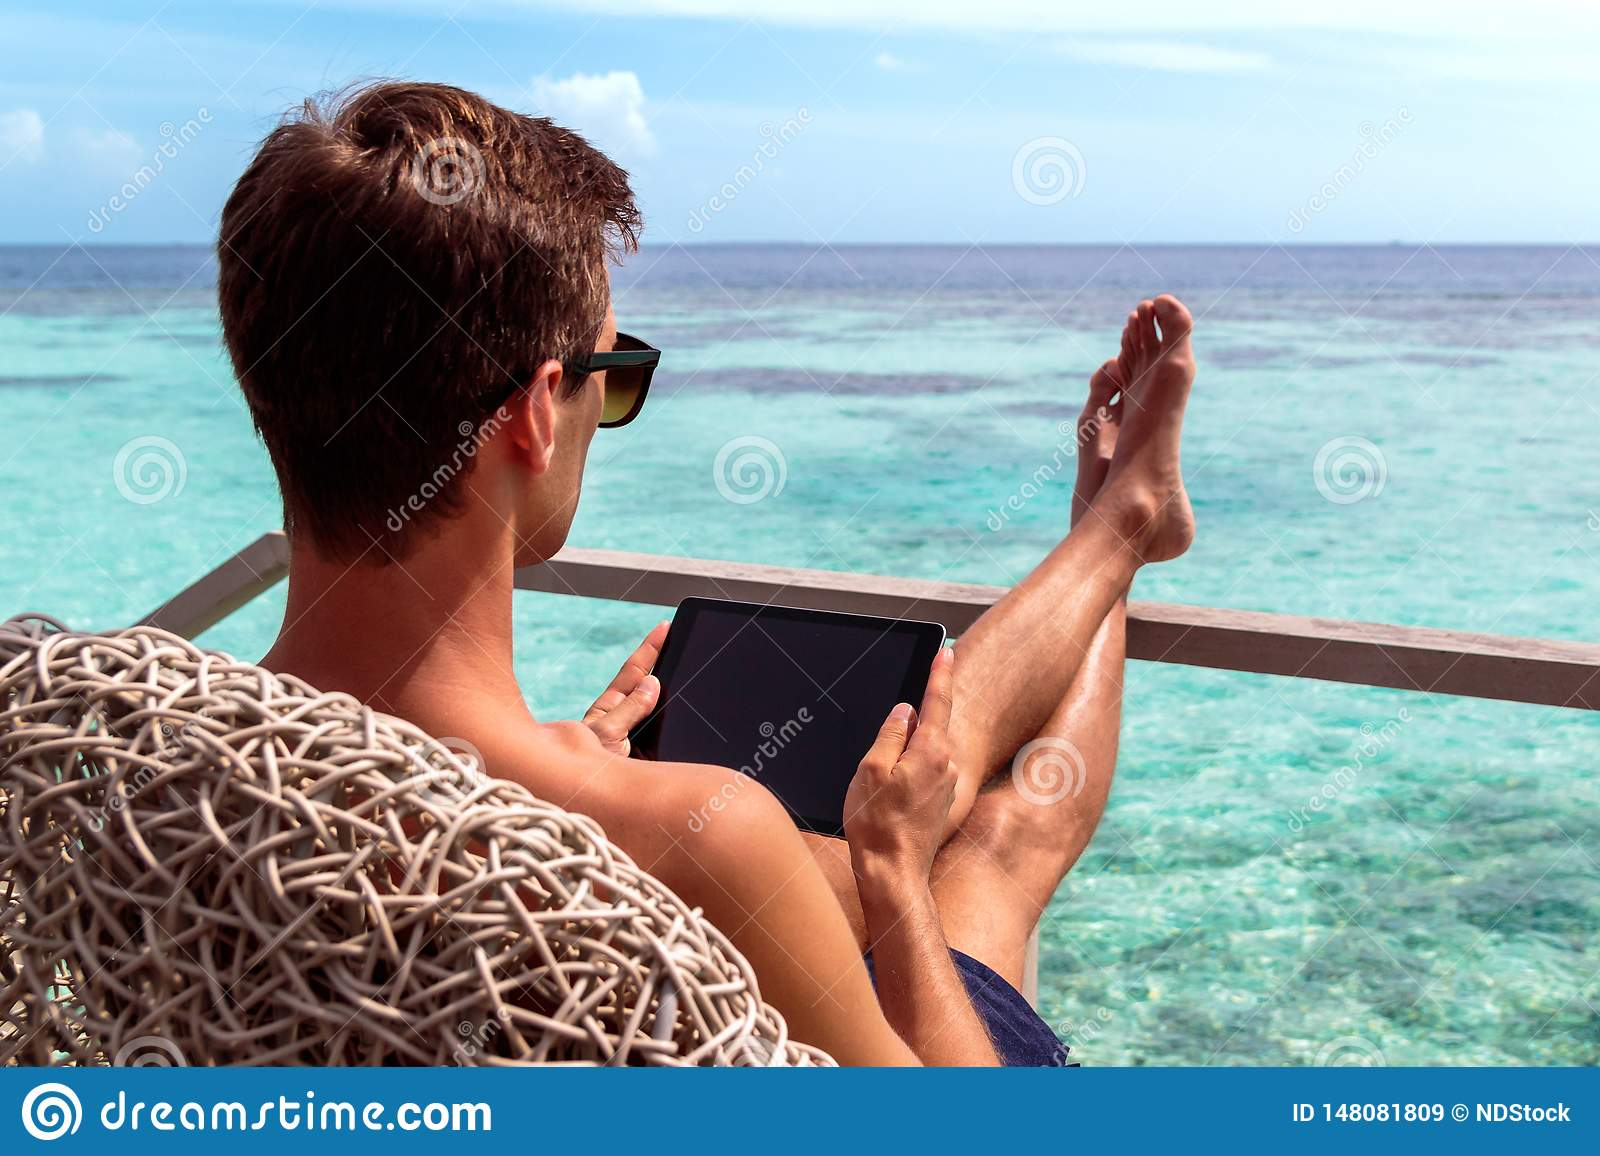 Young man in swimsuit working on a tablet in a tropical destination